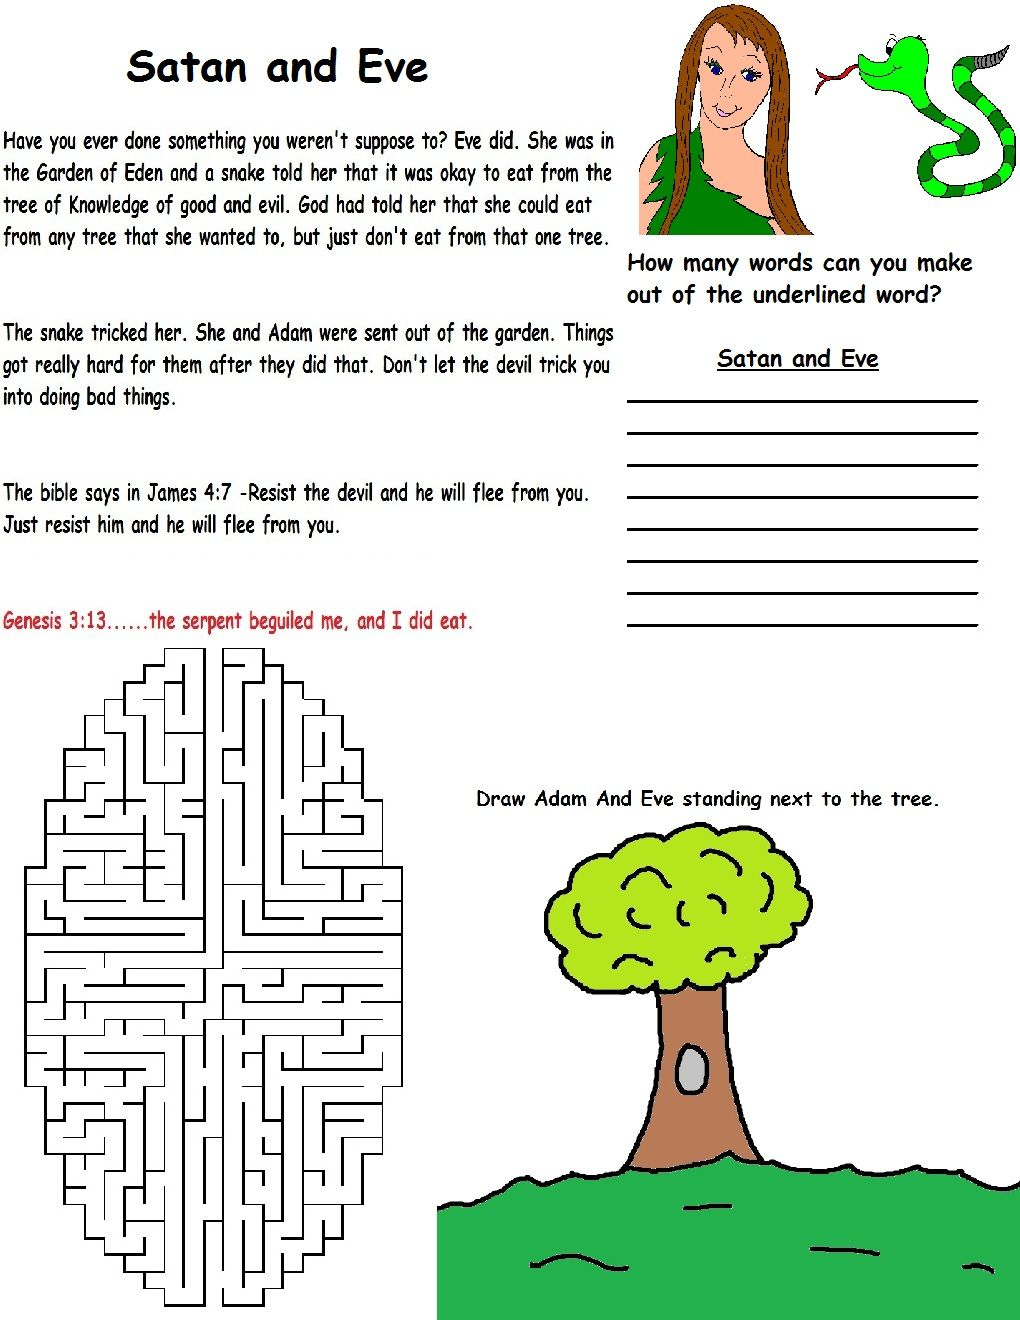 Adam and Eve printable wild card for kids to do during